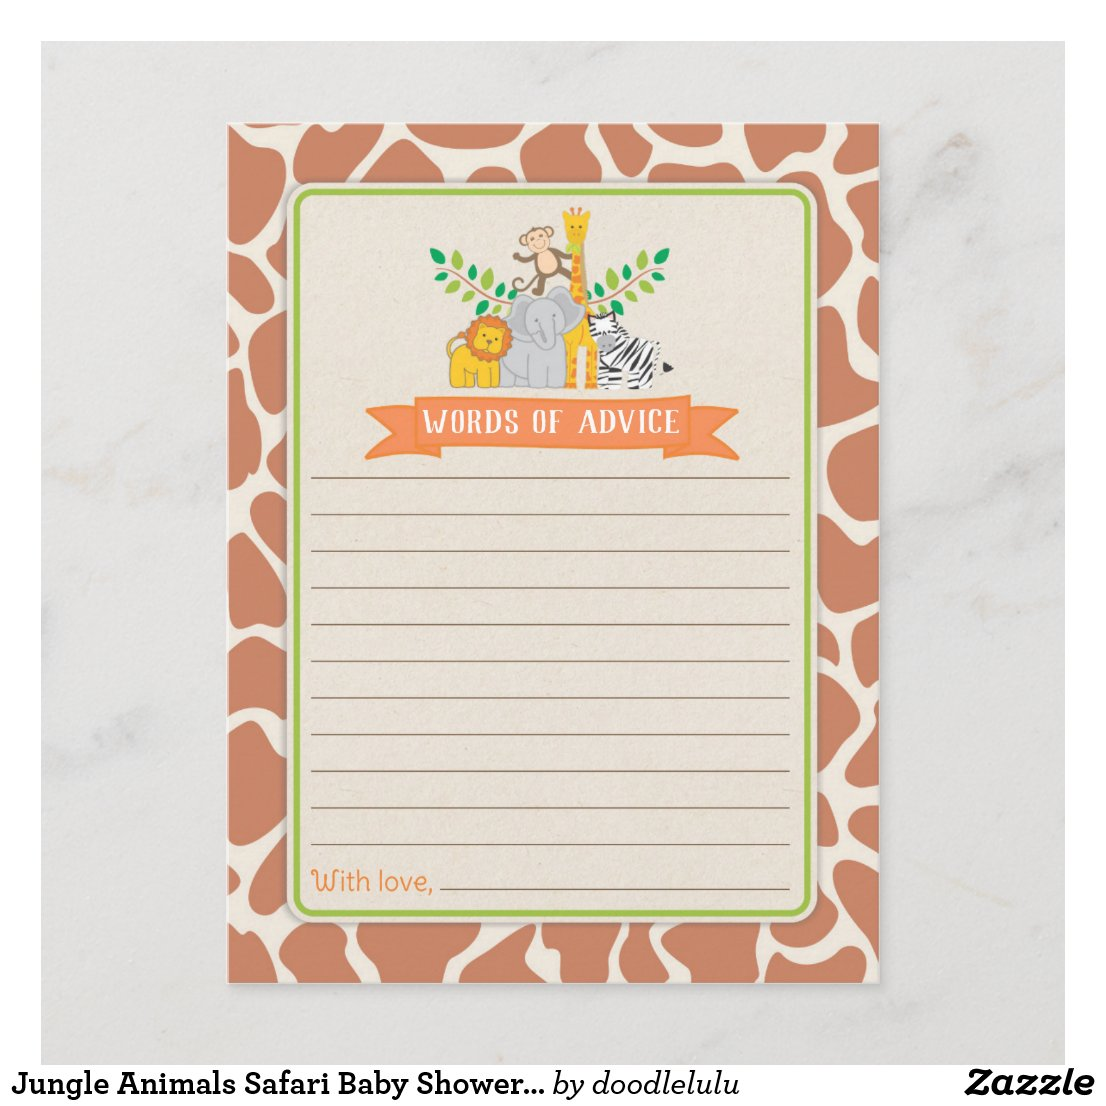 Jungle Animals Safari Baby Shower Words of Advice